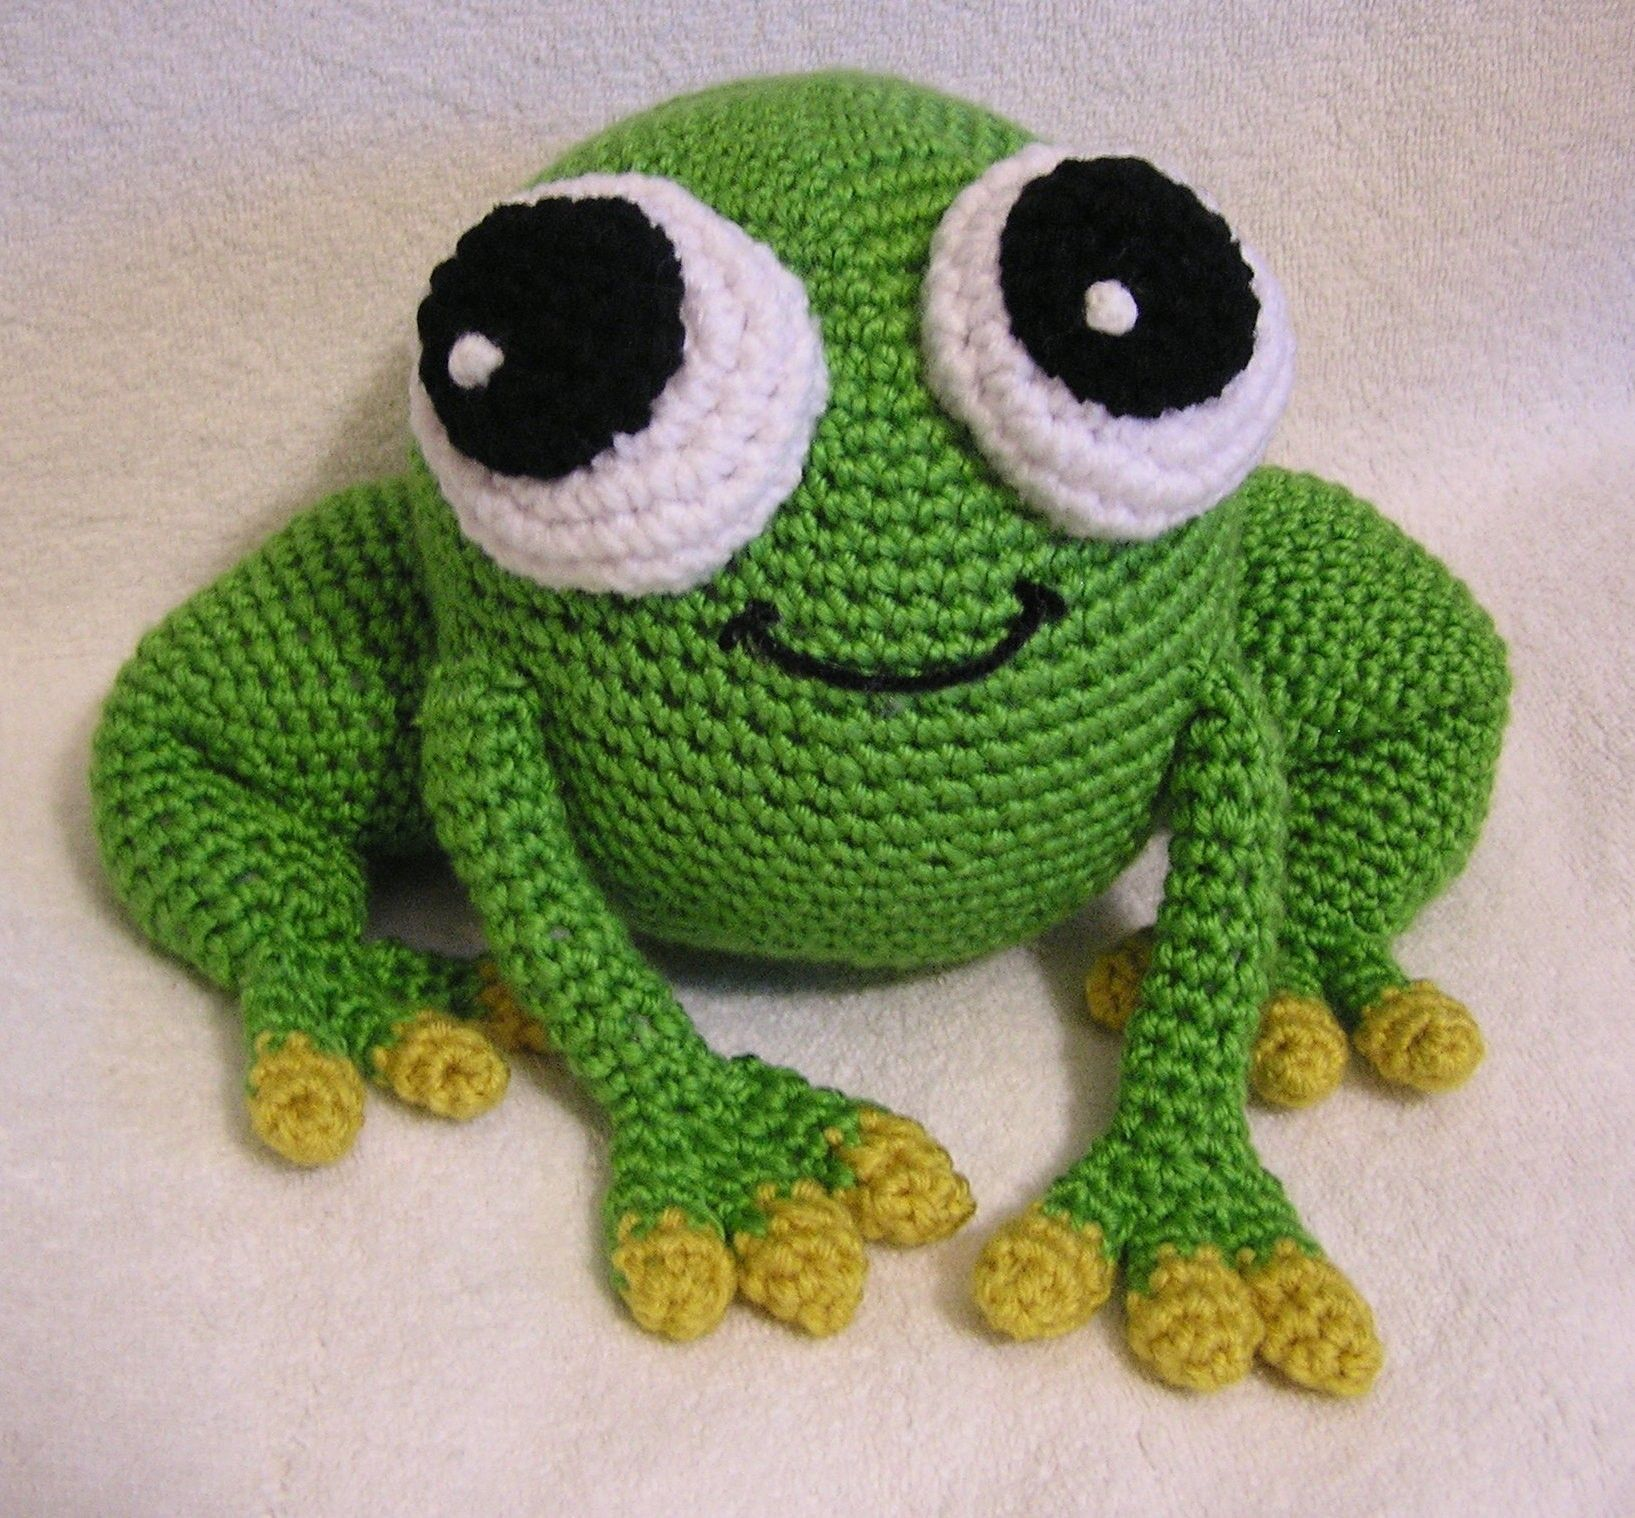 Frances the adorable frog free pattern crazy cool crochet love crochet frog pattern plus other crochet animals free patterns bankloansurffo Images